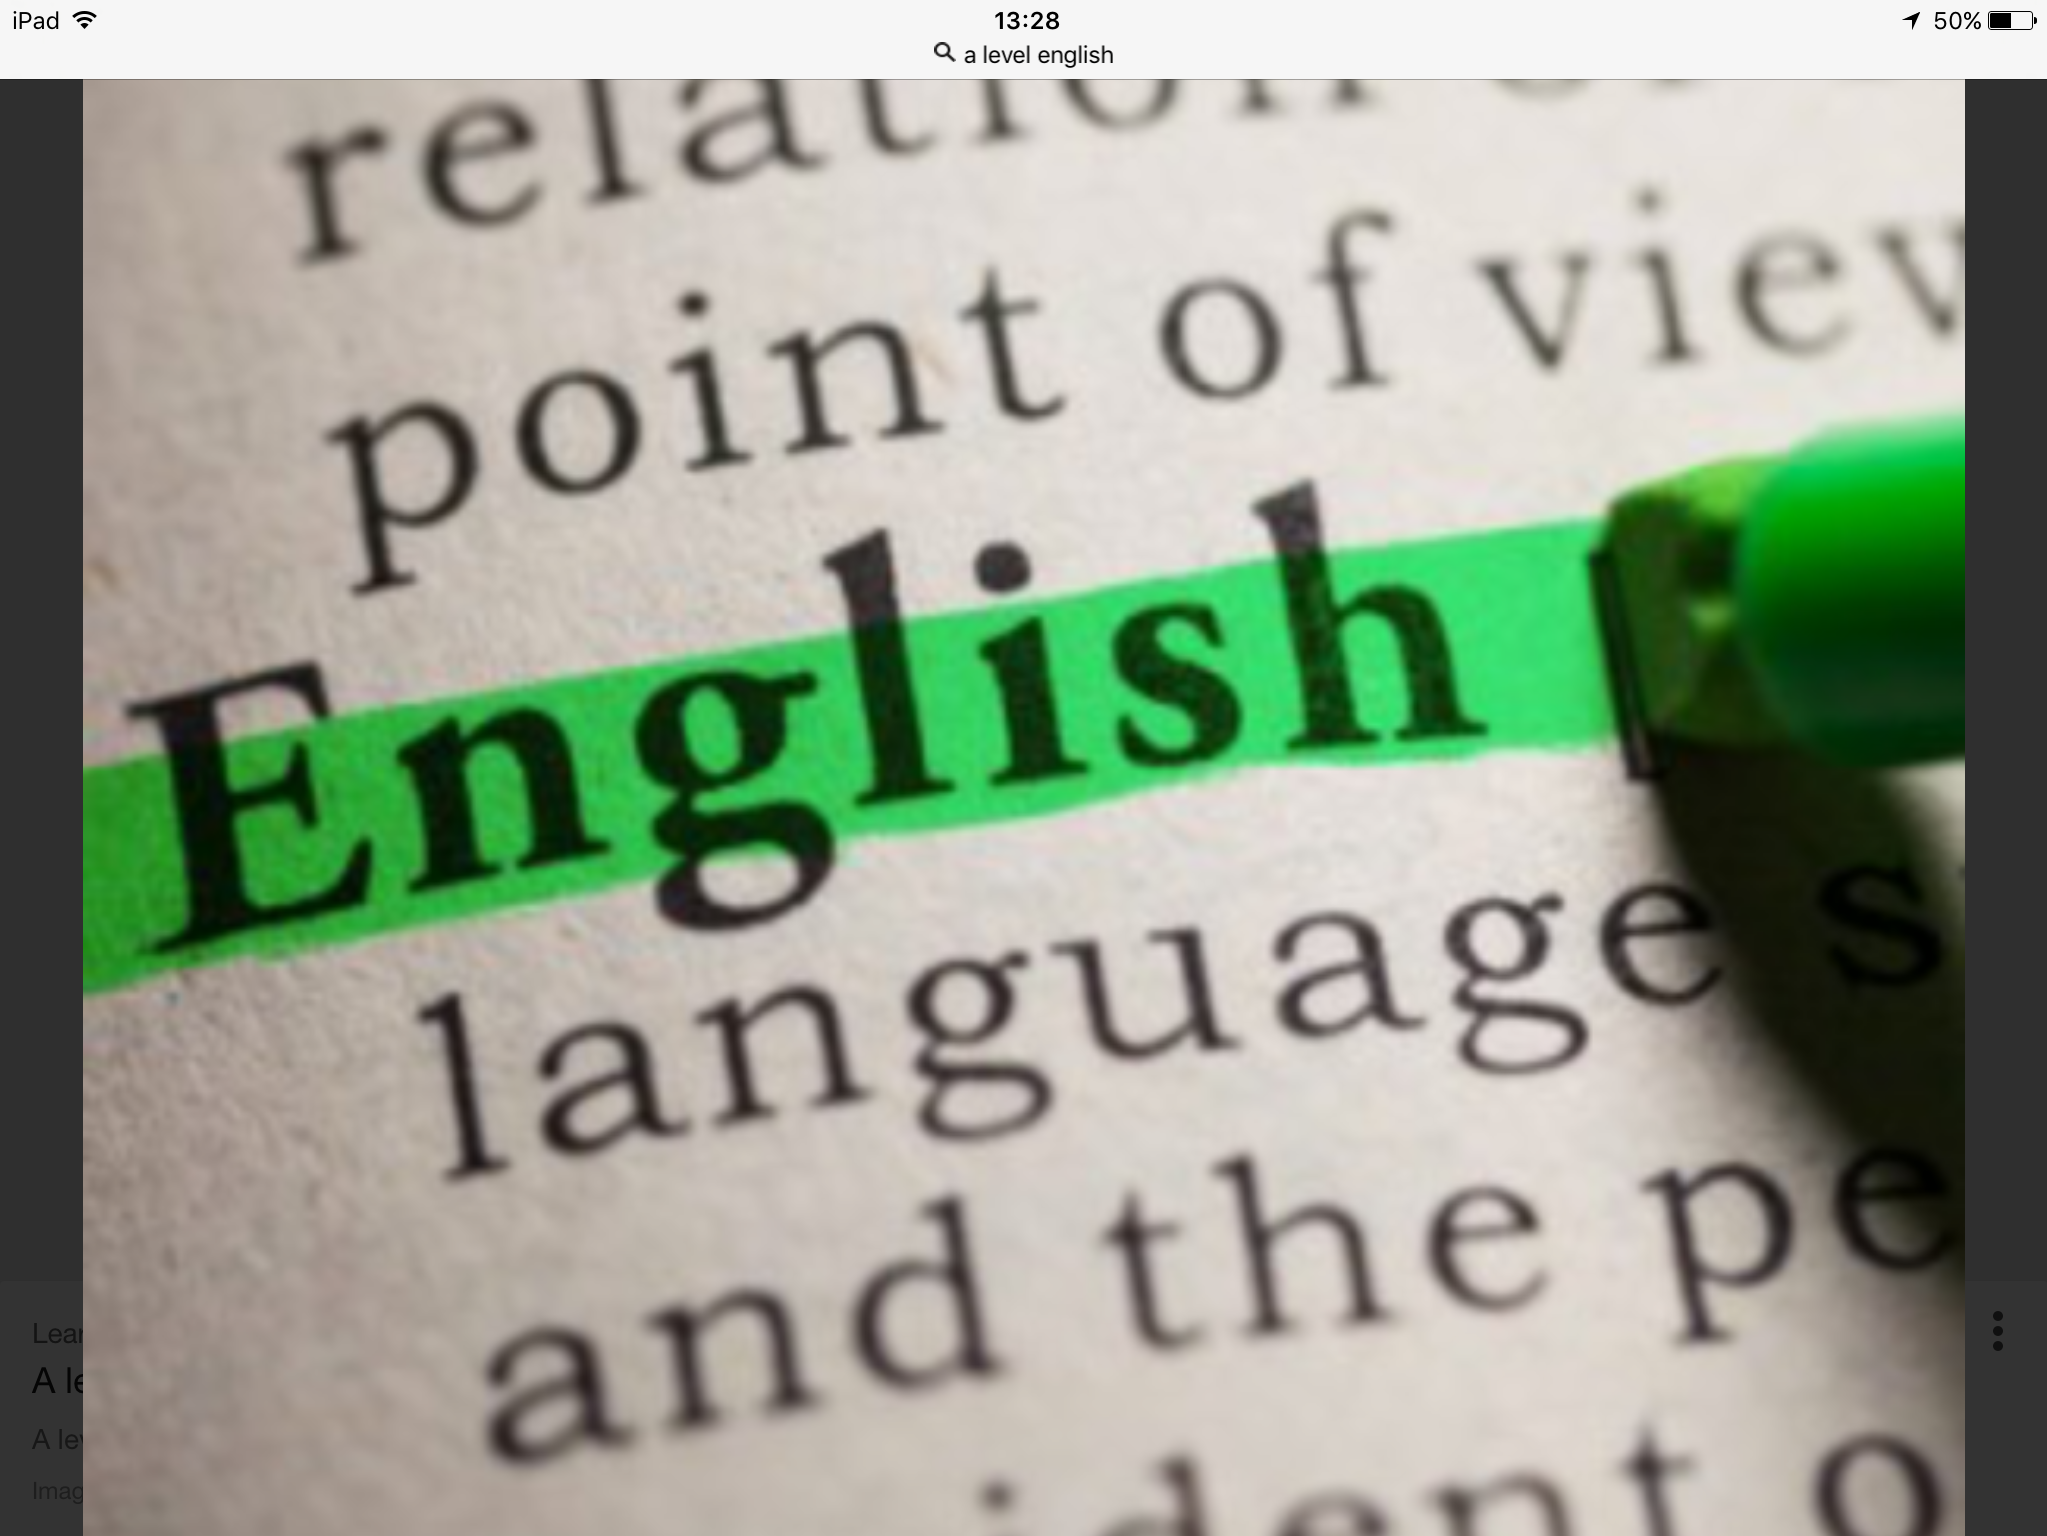 KS3 English Language Bundle: preparing students for the GCSE framework